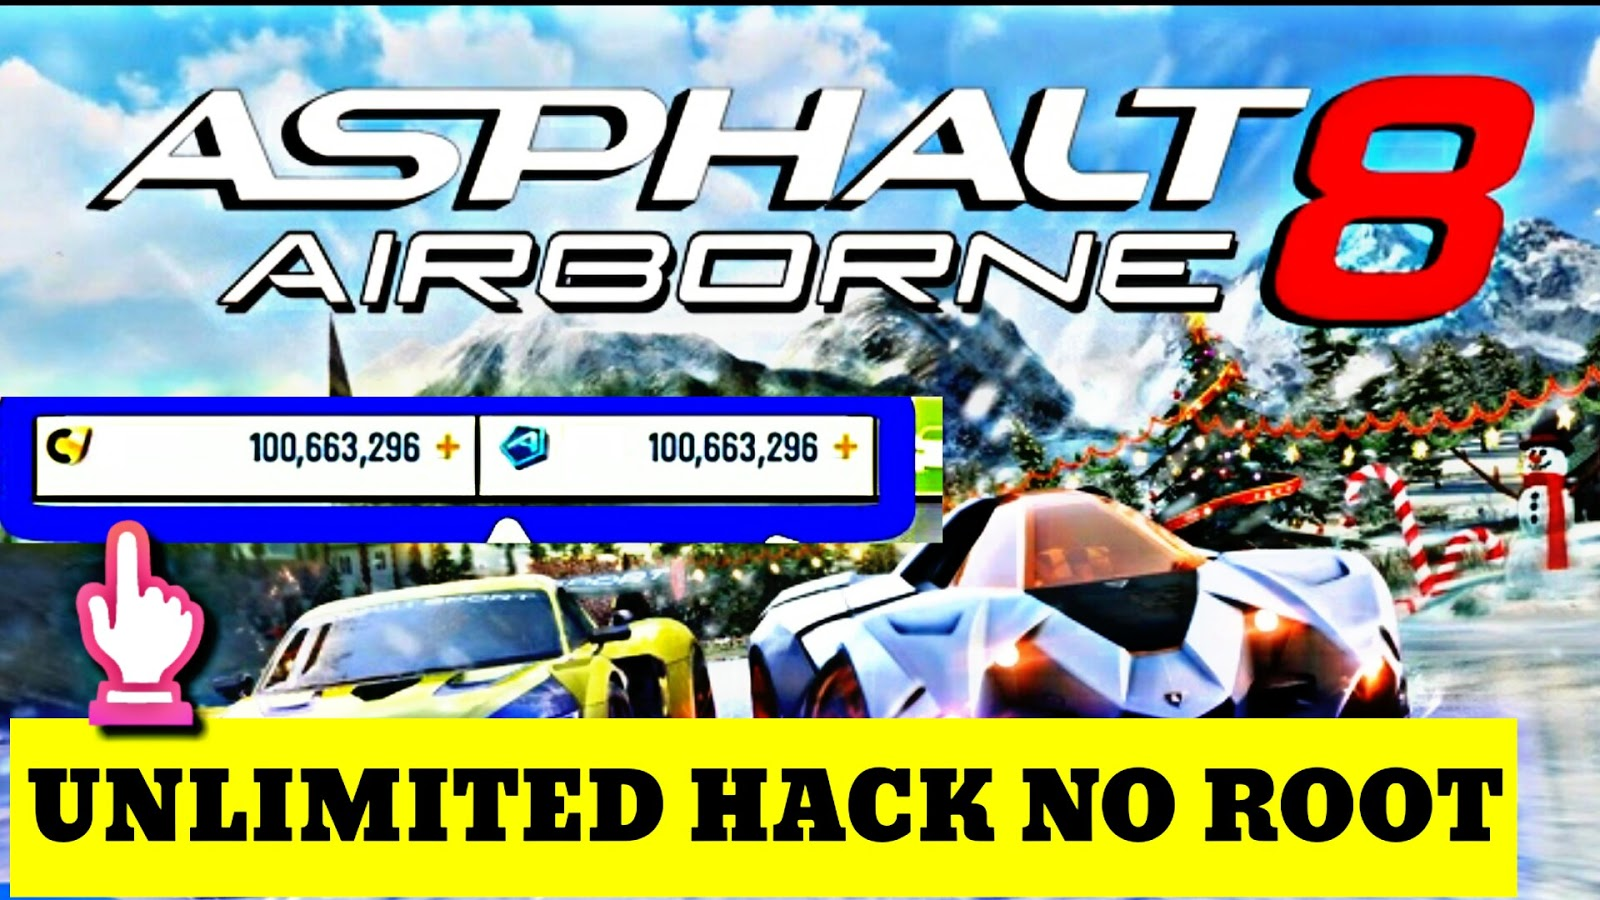 【ANDROIDOYUN.CLUB ASPHALT8 ASPHALT 8】 Credits and Tokens FOR ANDROID IOS PC PLAYSTATION | 100% WORKING METHOD | GET UNLIMITED RESOURCES NOW